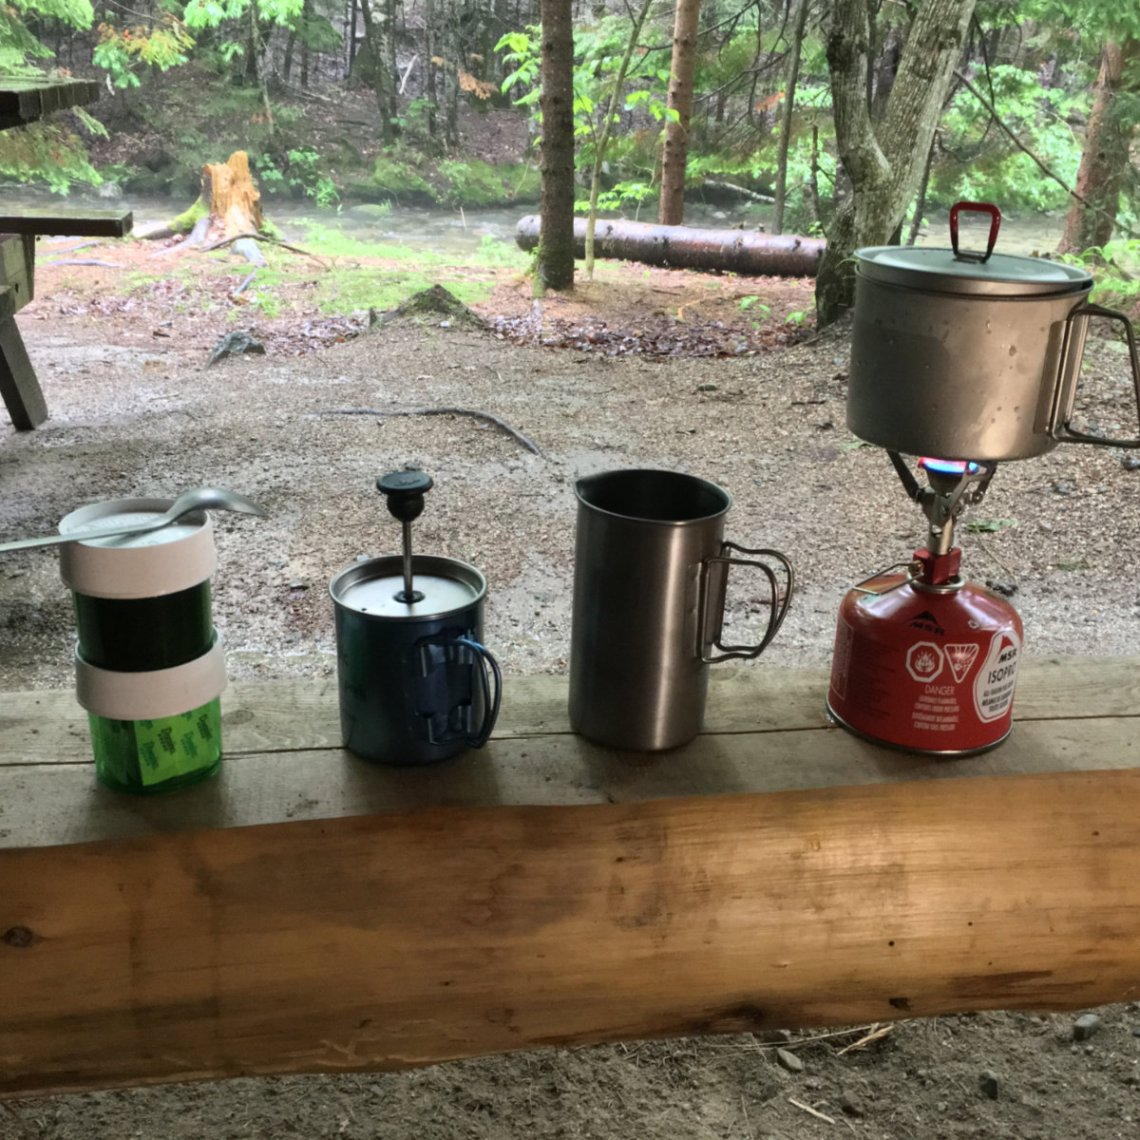 Breakfast at our shelter at Katahdin Stream Campground.